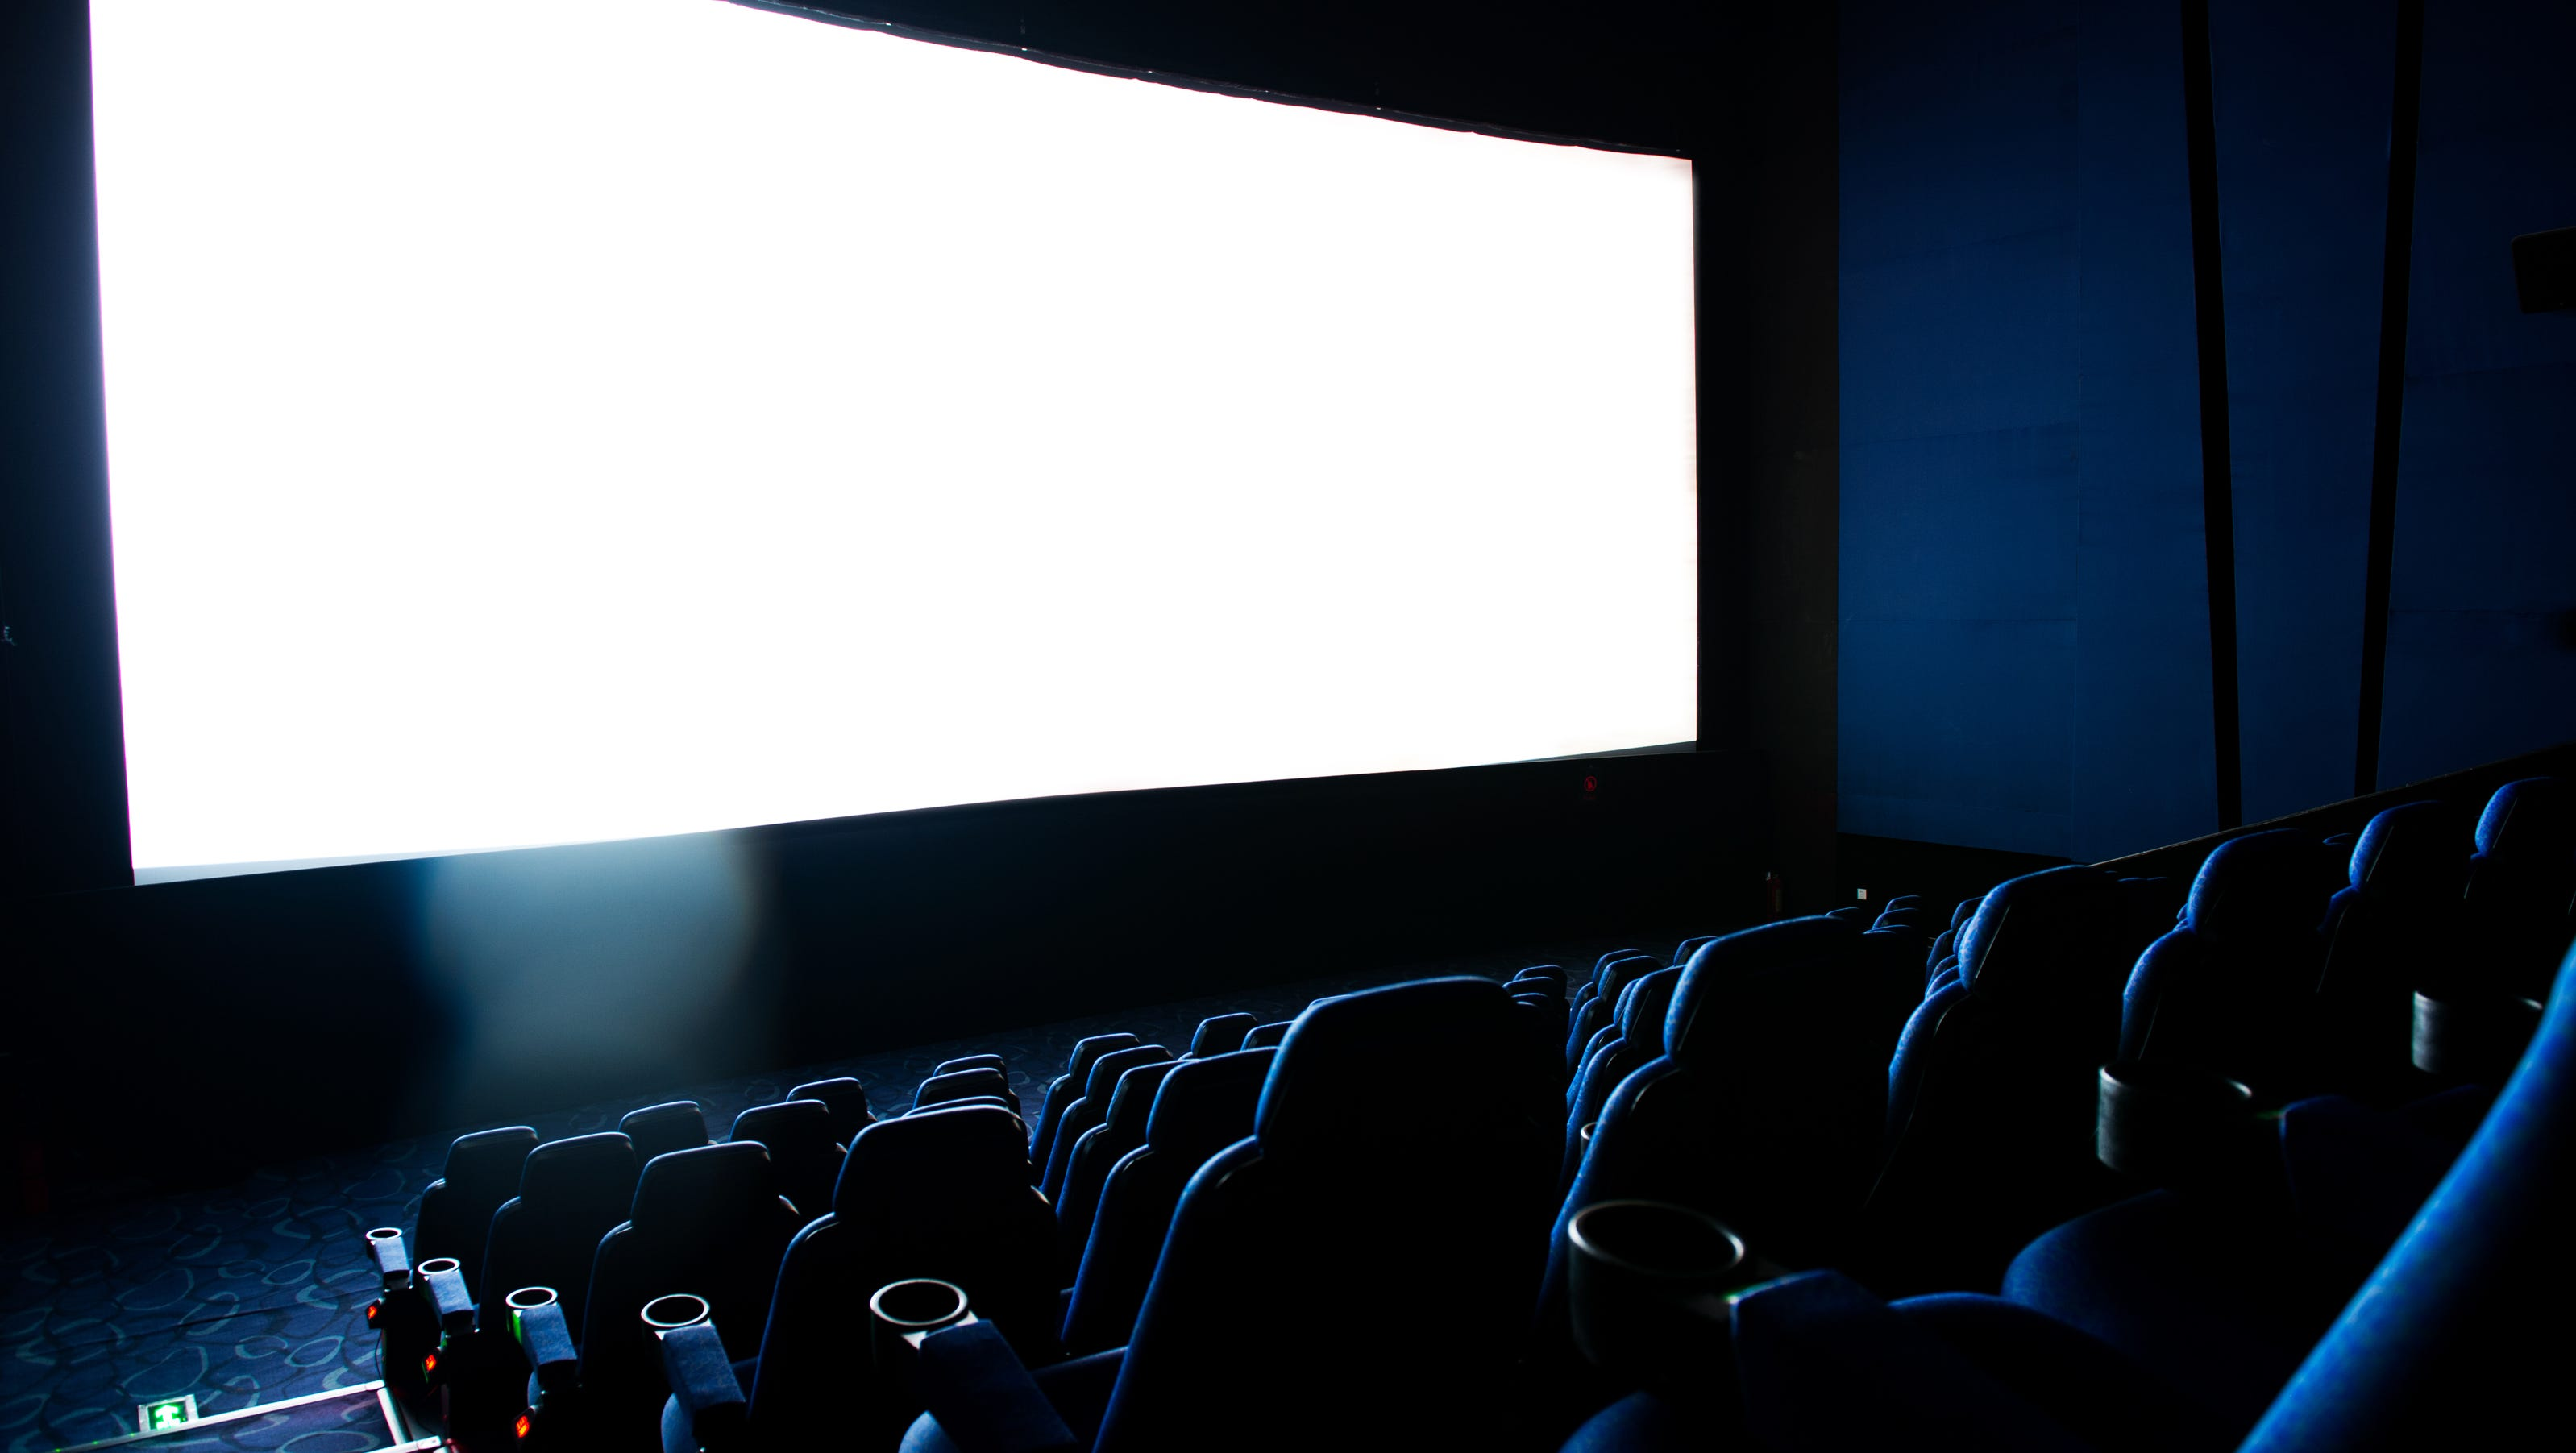 2 Edwards Theaters Out Luxury Movie Theater In The Orange County Register